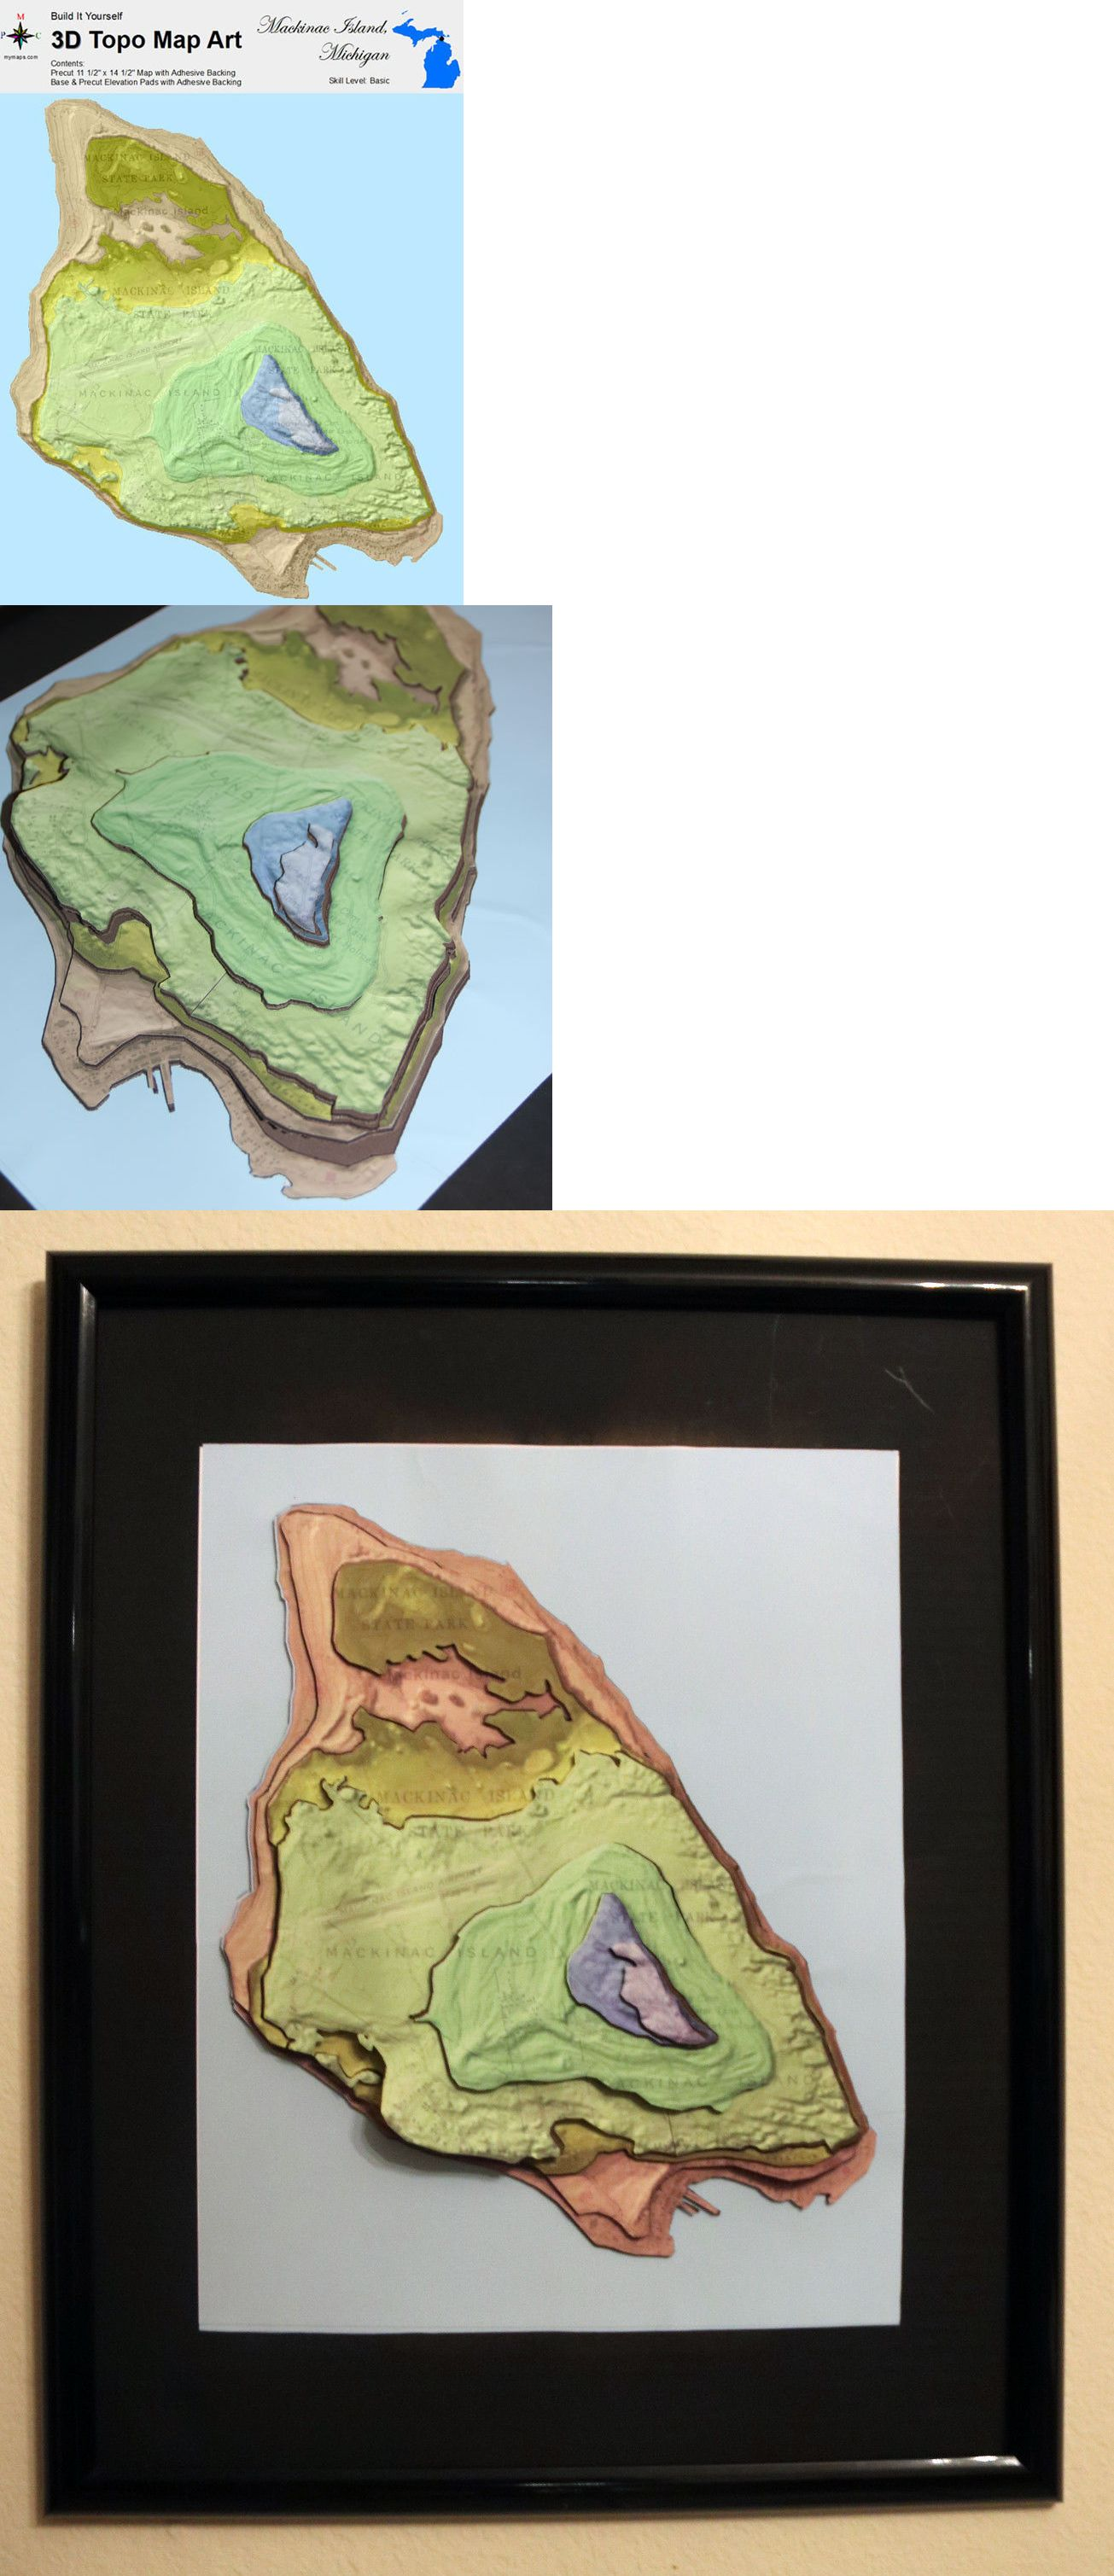 Other Models and Kits 774 3D Topographic Map Art Mackinac Island